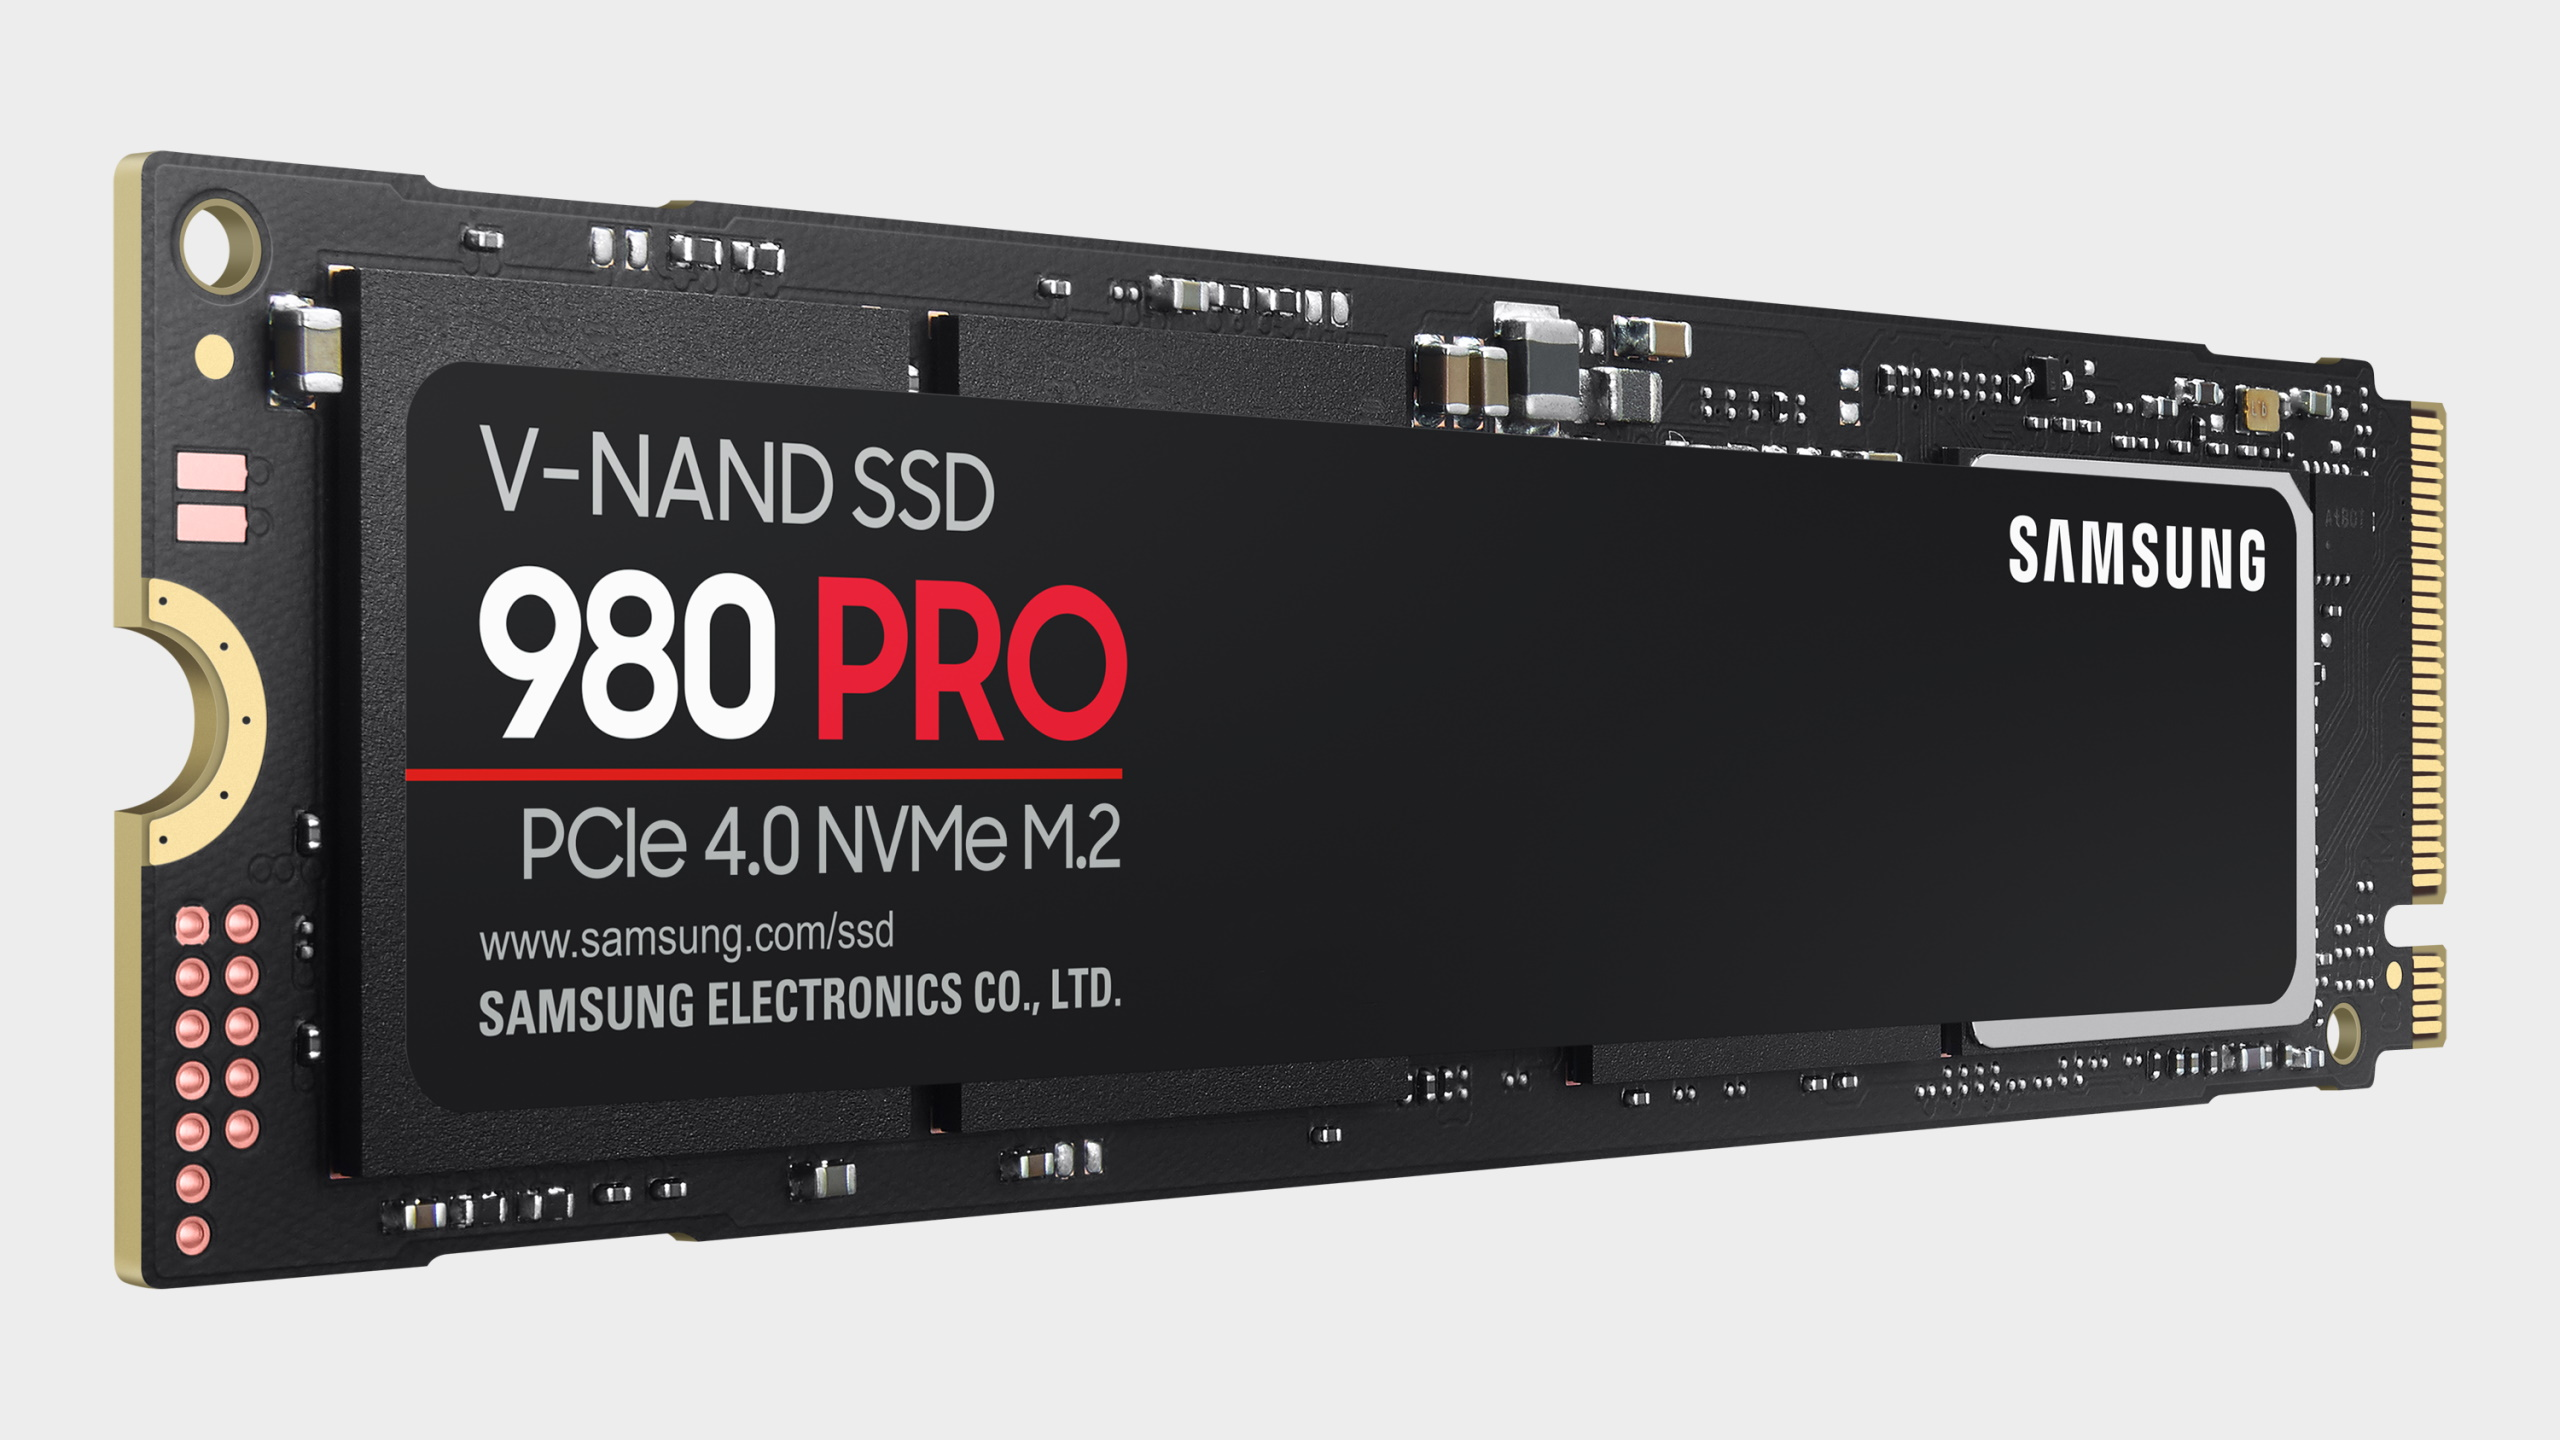 Samsung 980 Pro PCIe NVMe SSD